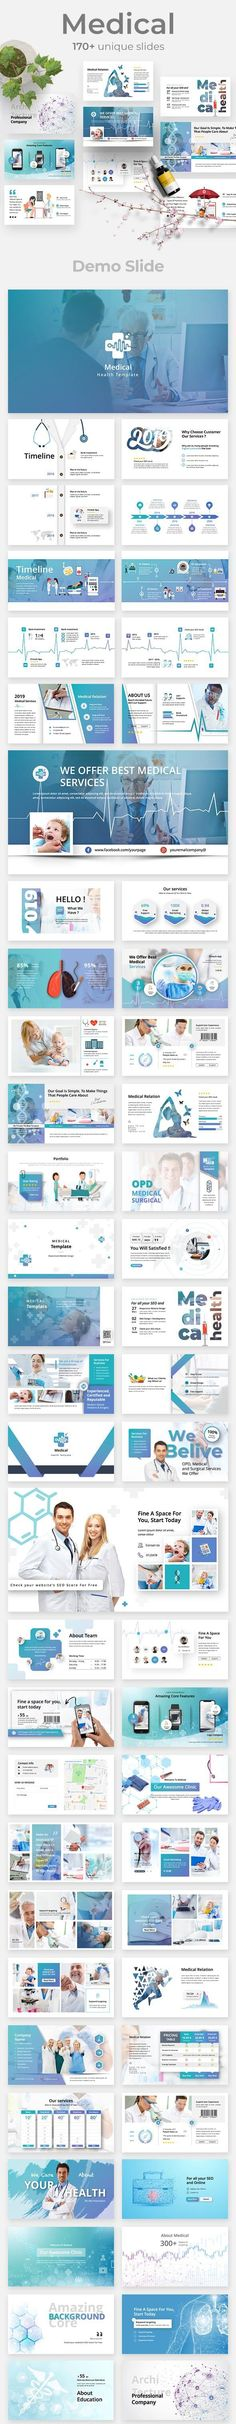 Buy Digital Trends Pitch Deck Multipurpose Keynote Template by bluestack on GraphicRiver. General Description No Animation Template High resolution / Free Fonts used: Raleway Family Font Presentation Slides, Business Presentation, Presentation Design, Presentation Templates, Web Design, Graphic Design, World Data, Pitch Deck, Slide Template